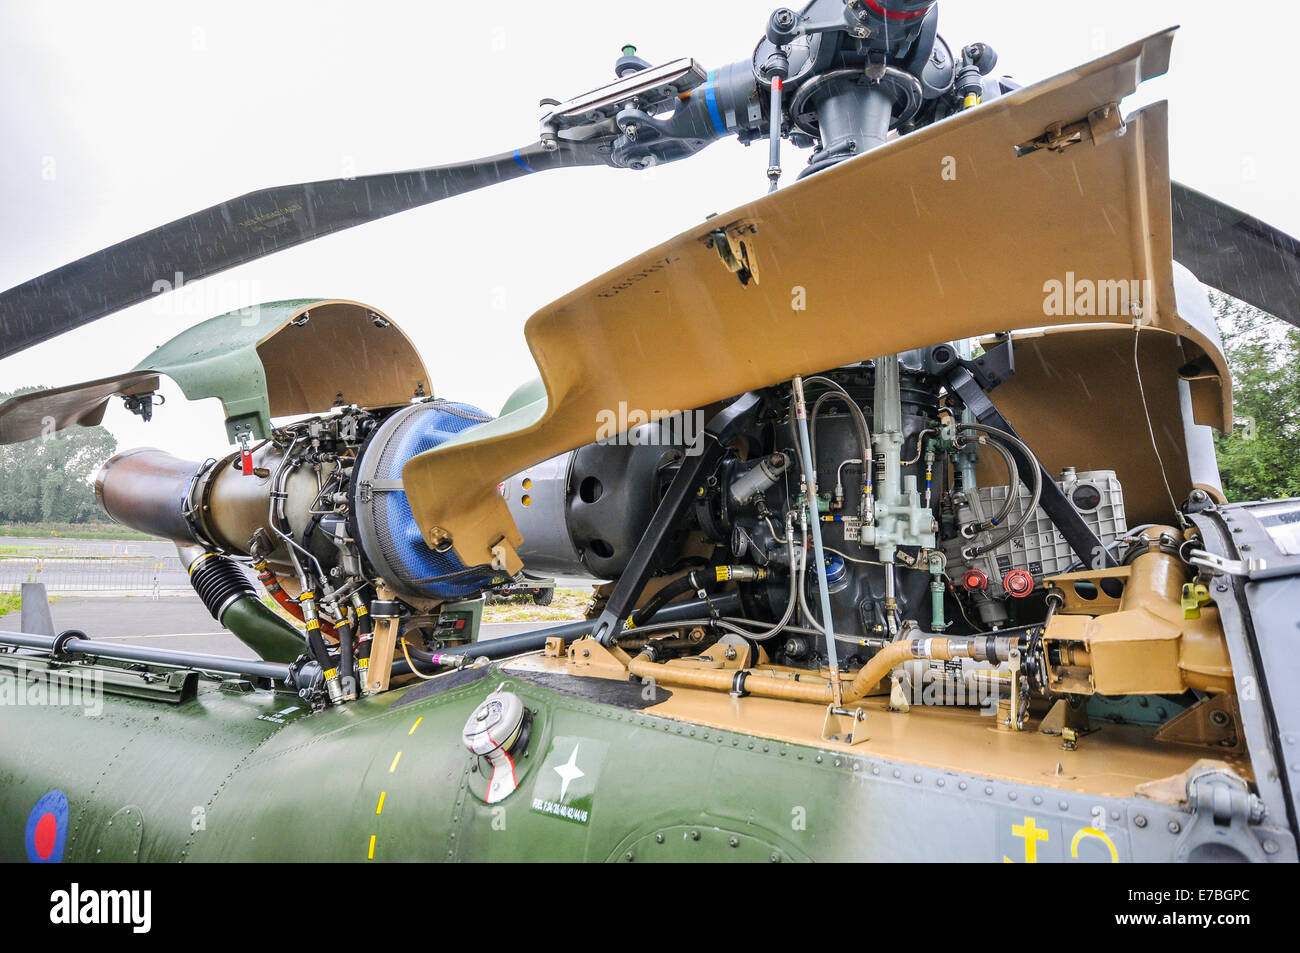 Gas turbine engine and gearbox on an Aerospaciale Gazelle military helicopter - Stock Image